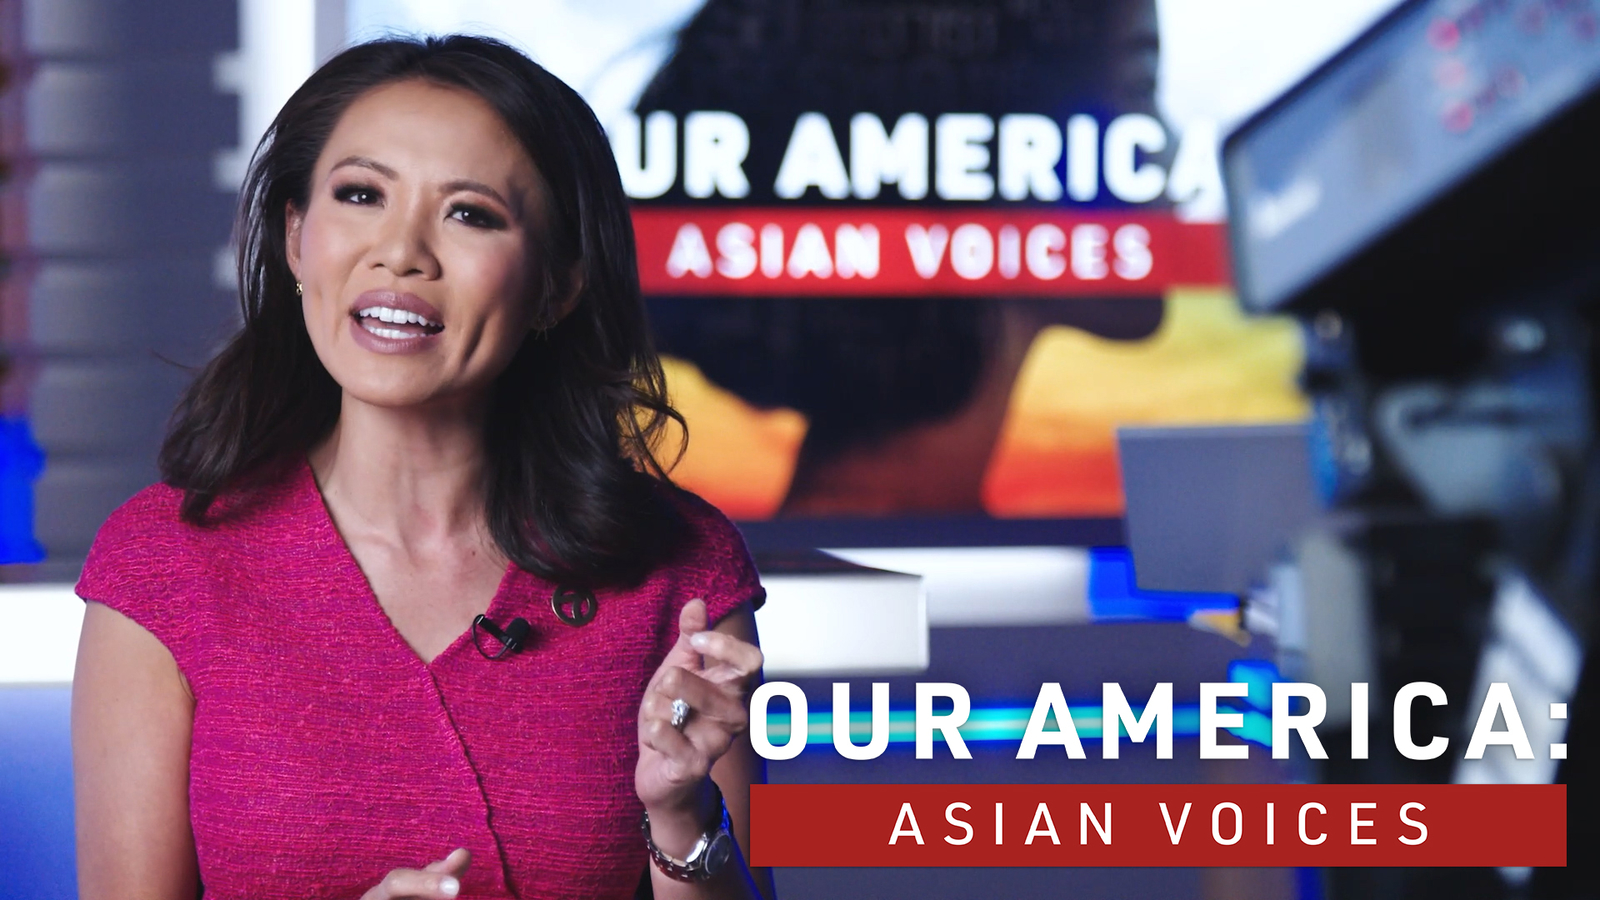 abc11.com: Our America: The story behind the stories about rising hate crimes against Asian Americans